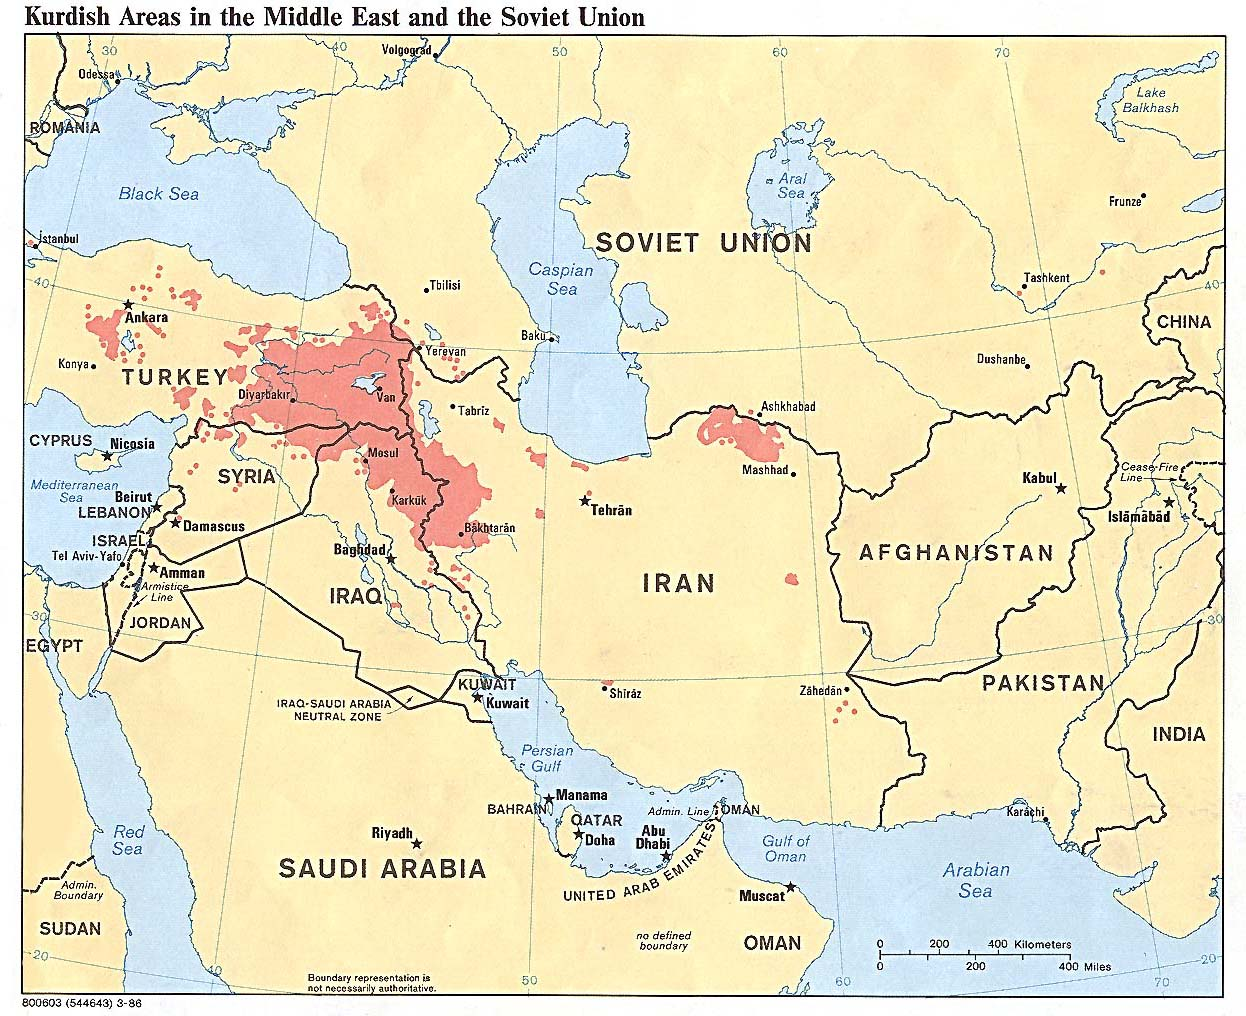 Map of Kurdish Areas in the Middle East